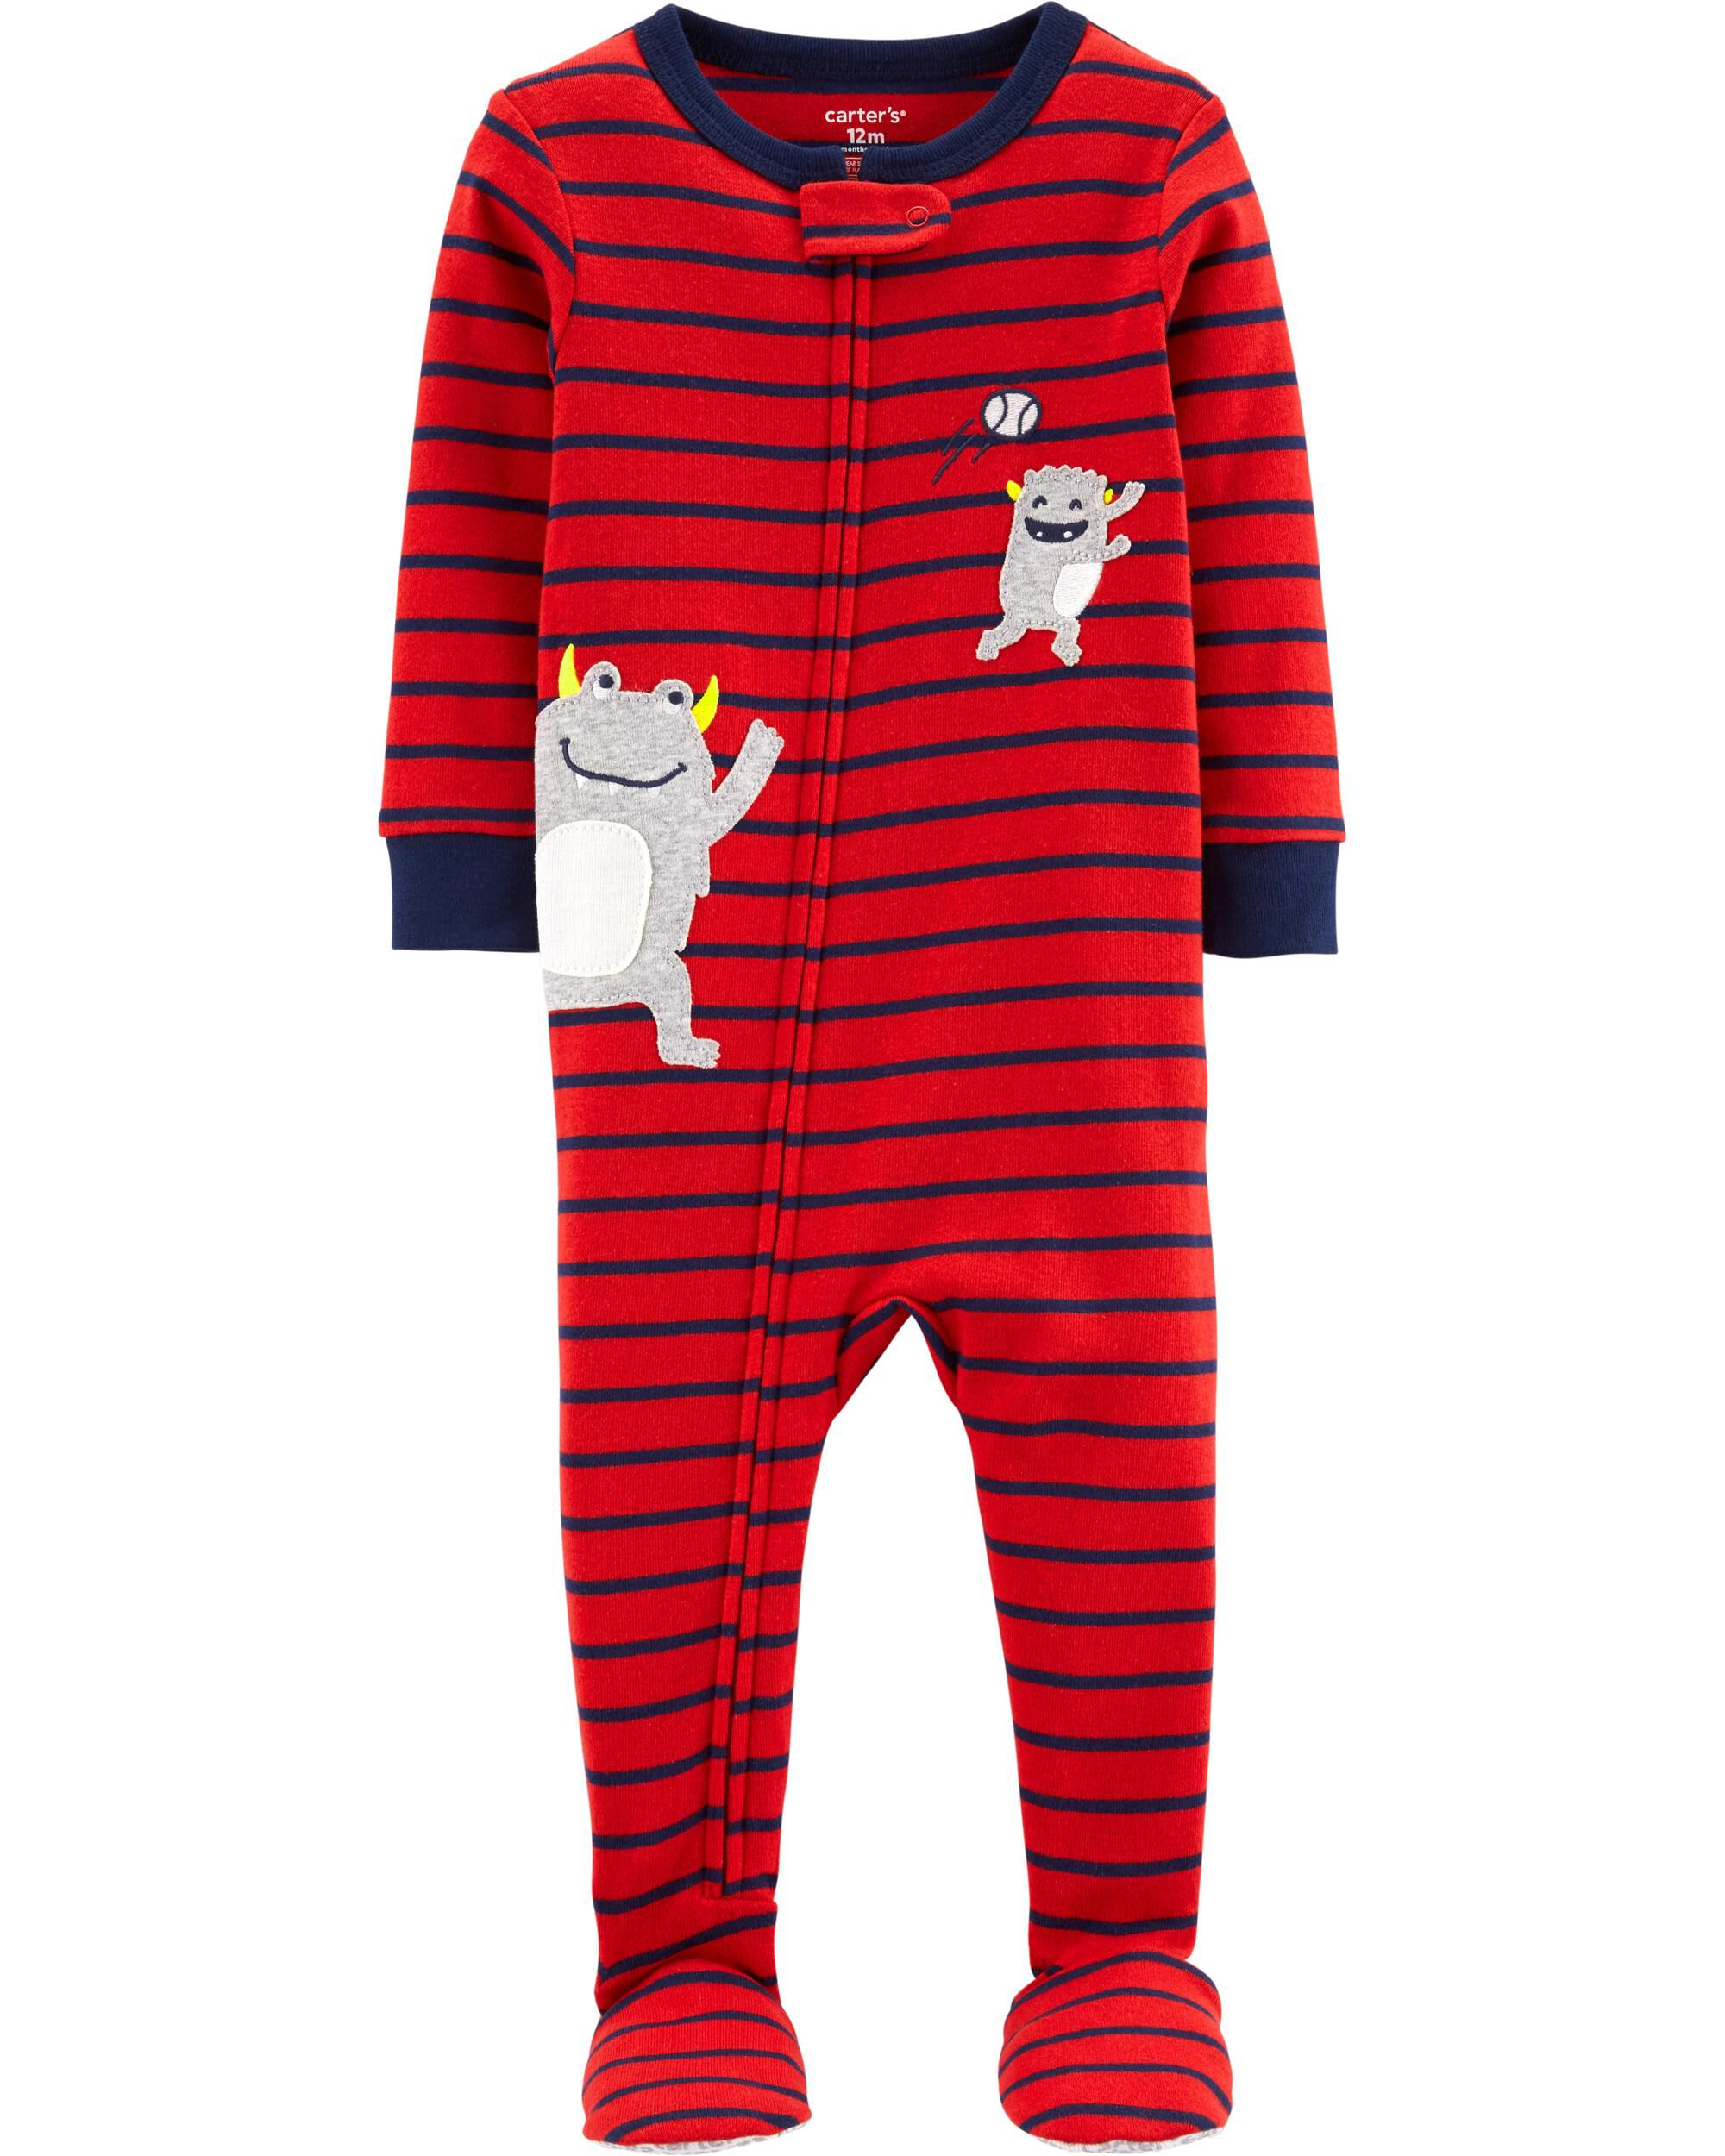 Carters Baby Boys 1 Piece Cotton Sleepwear